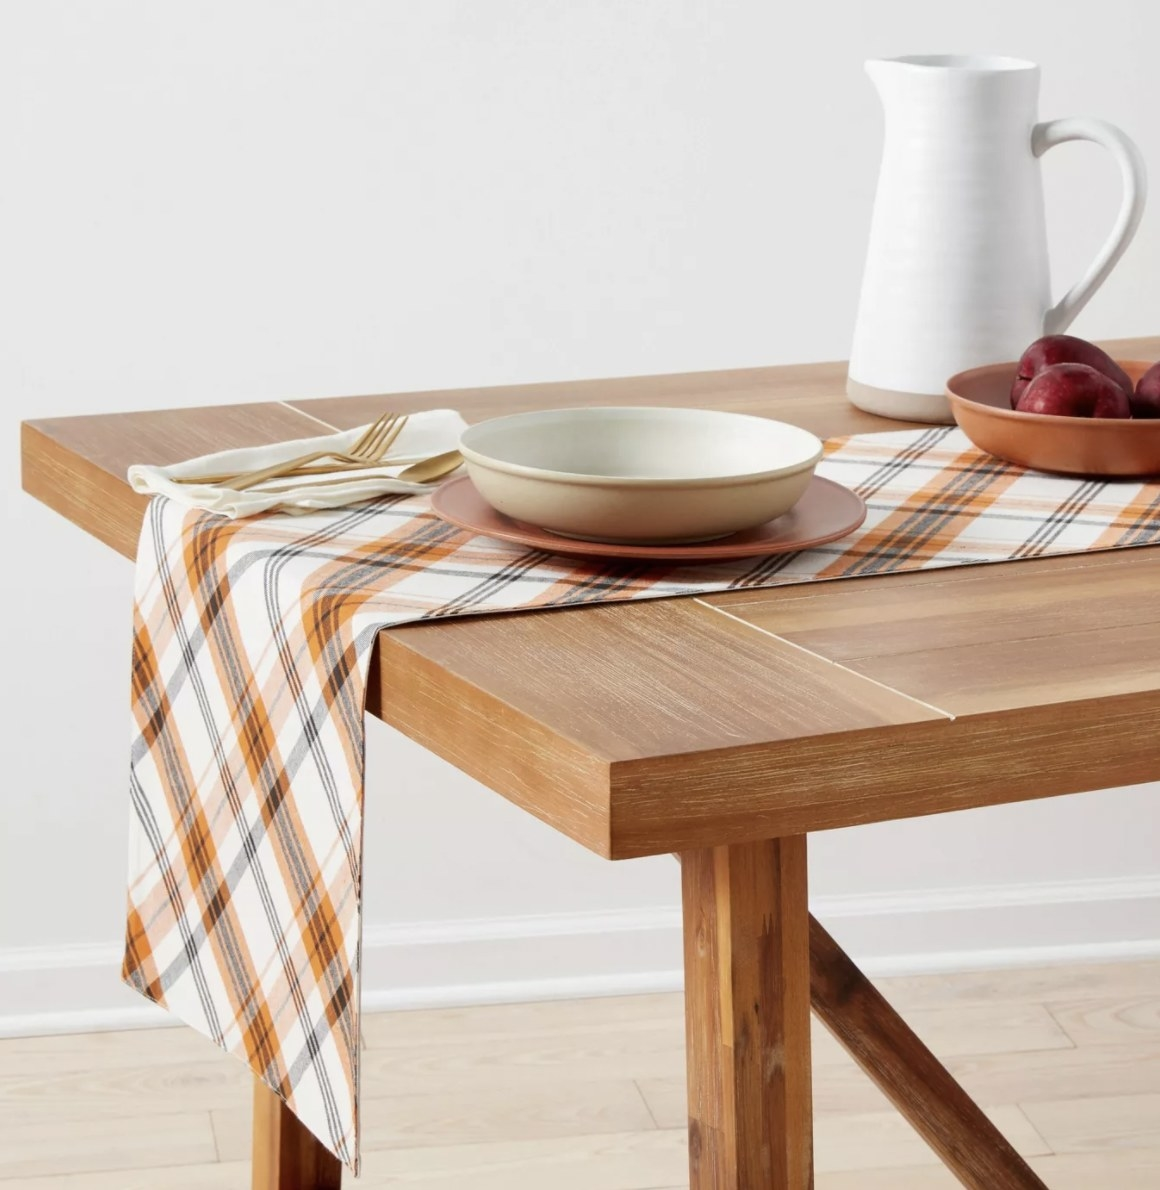 an orang and black plaid table runner